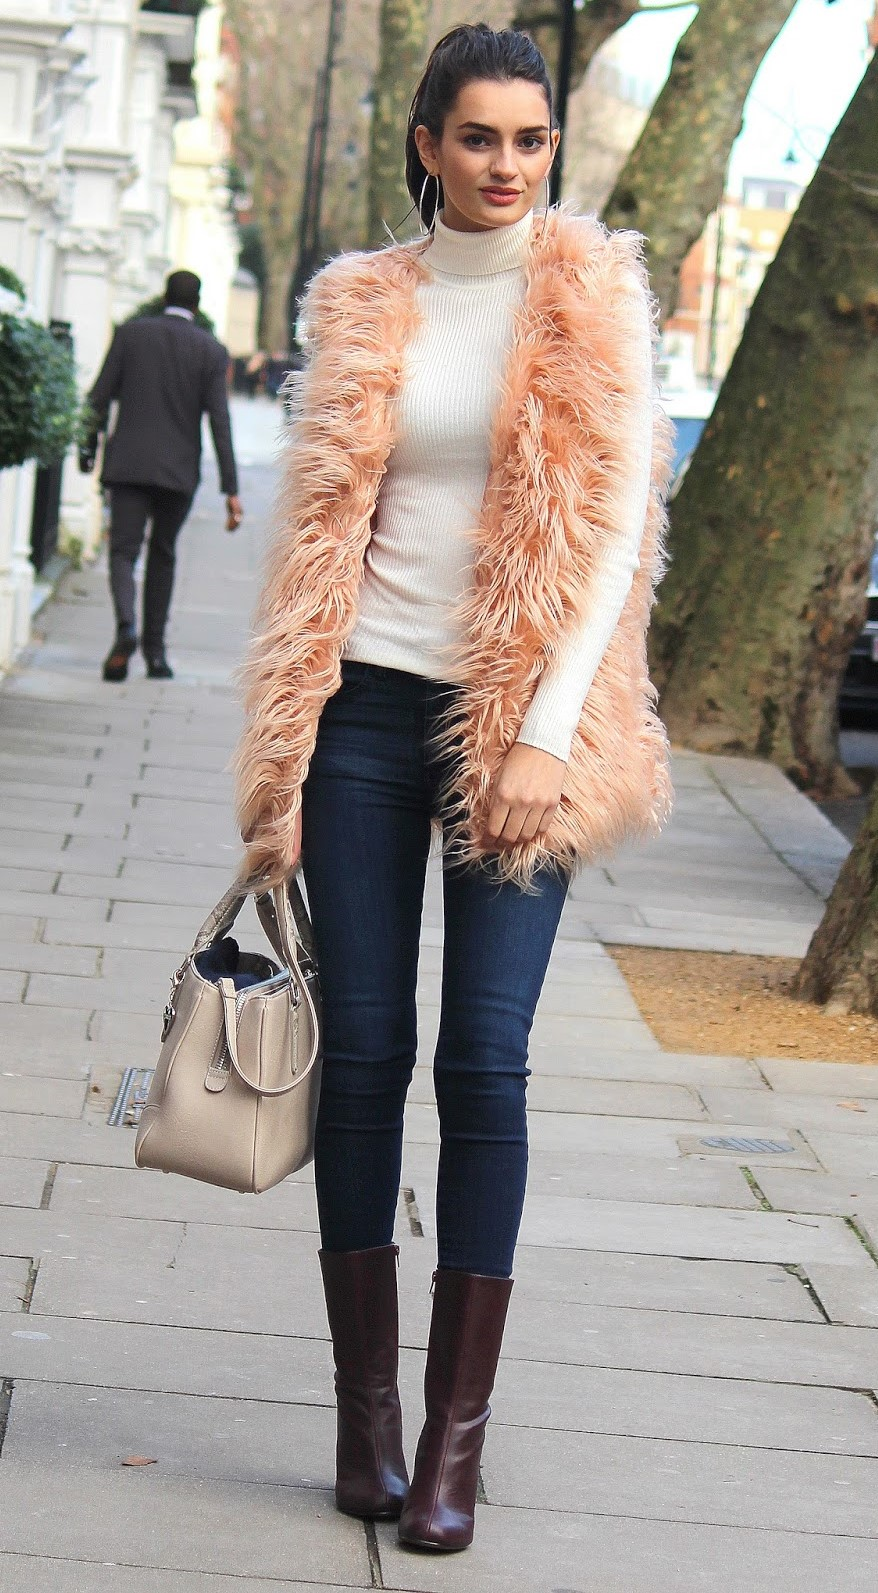 blue-navy-skinny-jeans-white-sweater-turtleneck-peach-vest-fur-brun-hoops-pony-tan-bag-brown-shoe-booties-fall-winter-lunch.jpg